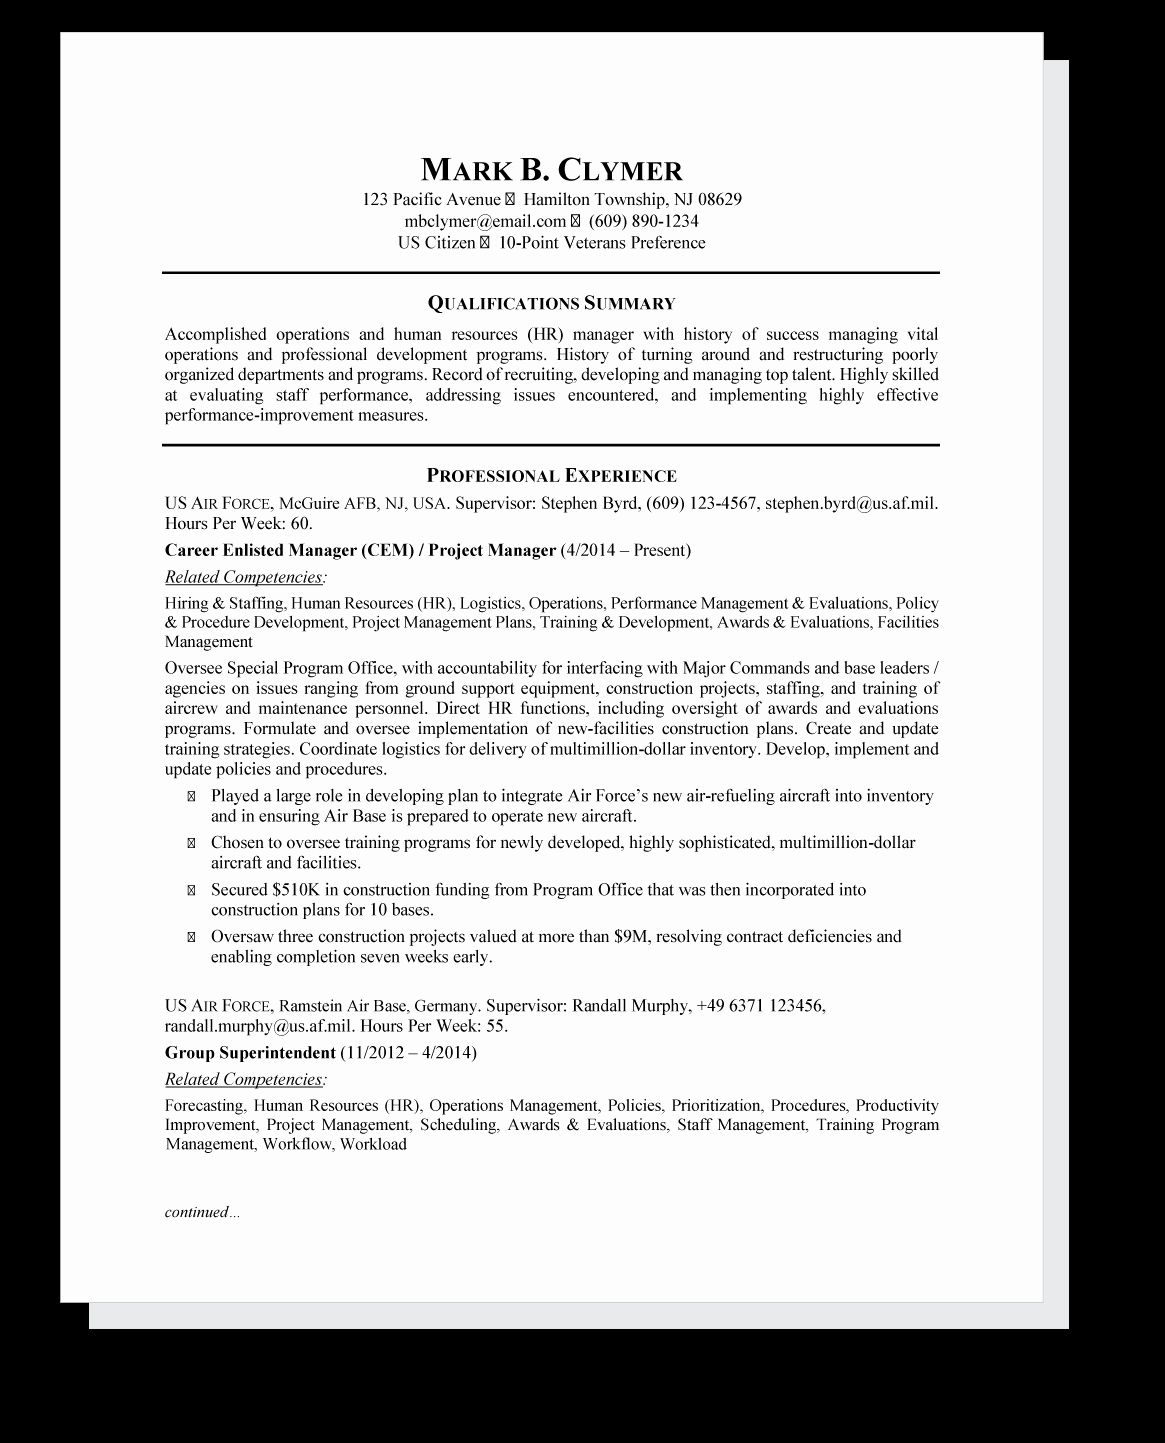 25 Federal Job Resume Template in 2020 (With images) Job